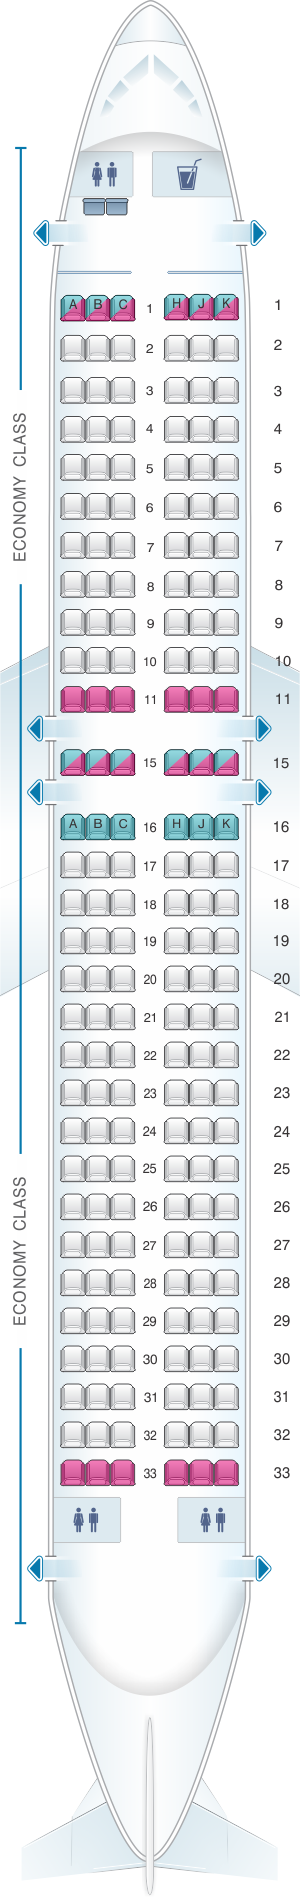 Seat map for Air Transat Airbus A320 200